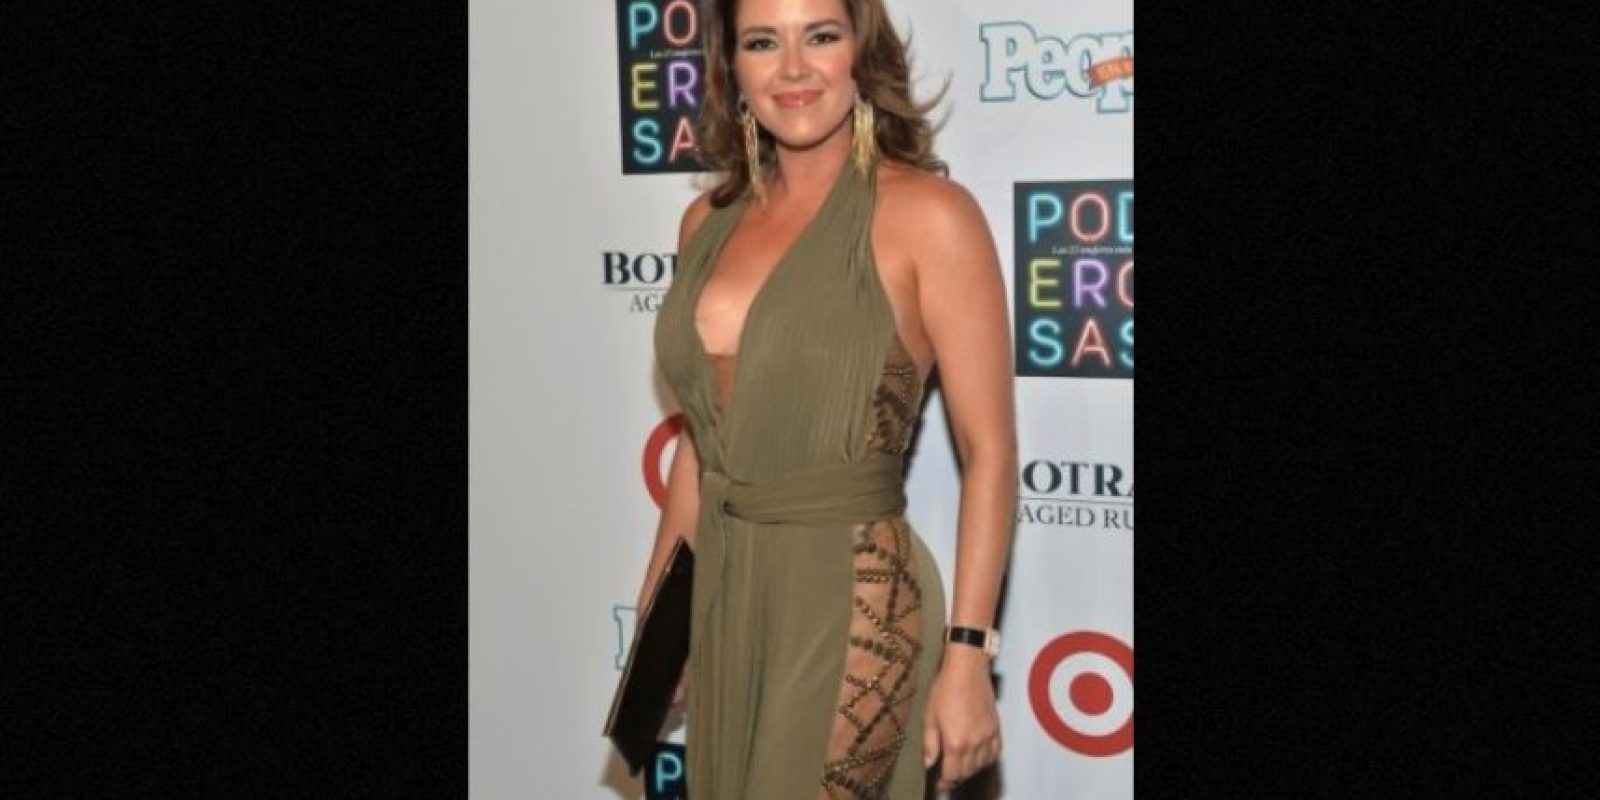 Alicia Machado Foto: Getty Images